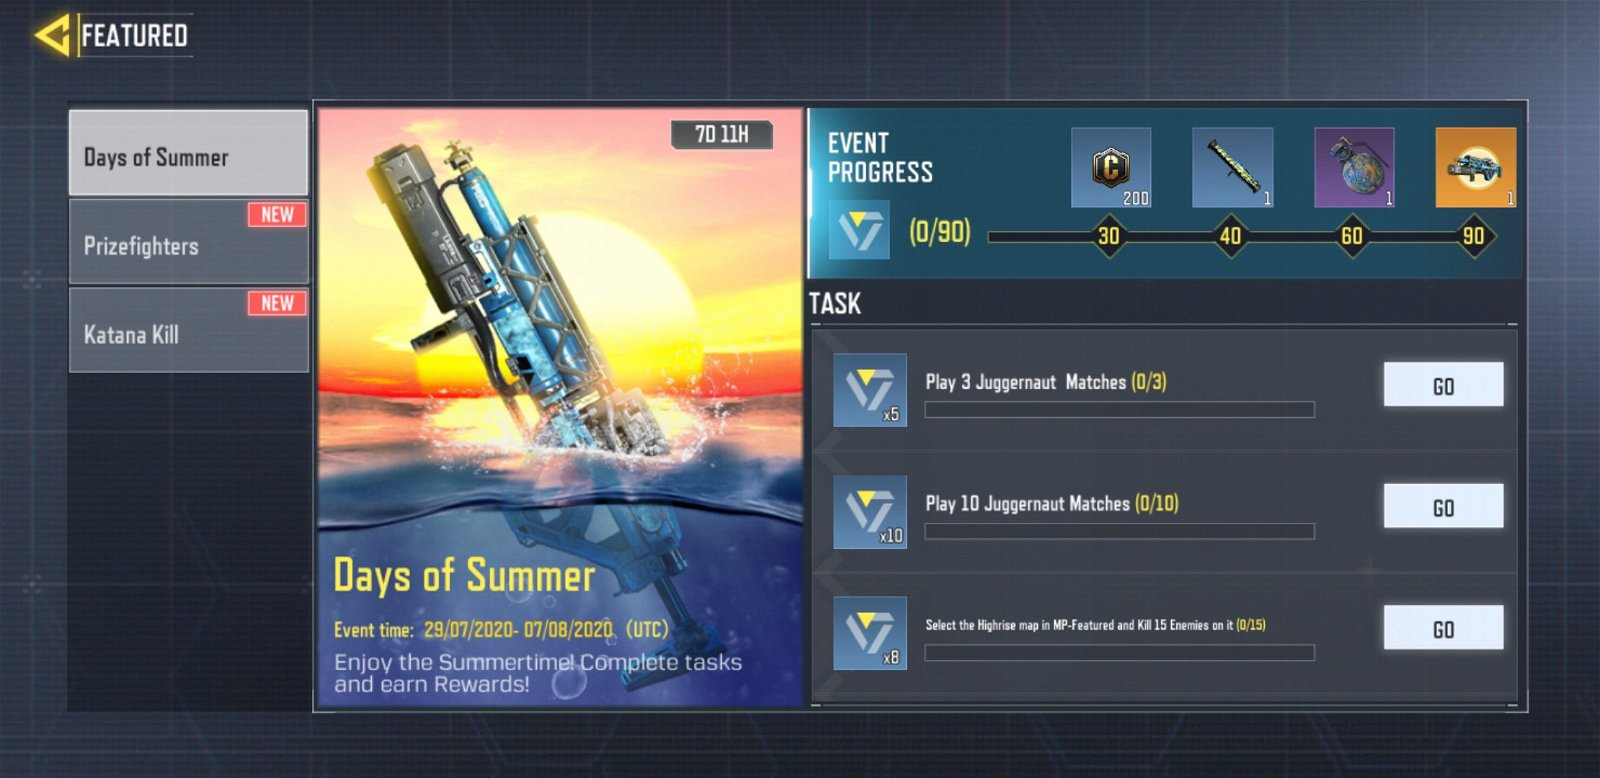 How to Unlock Purifier H2O in COD Mobile - Days of Summer Rewards 4